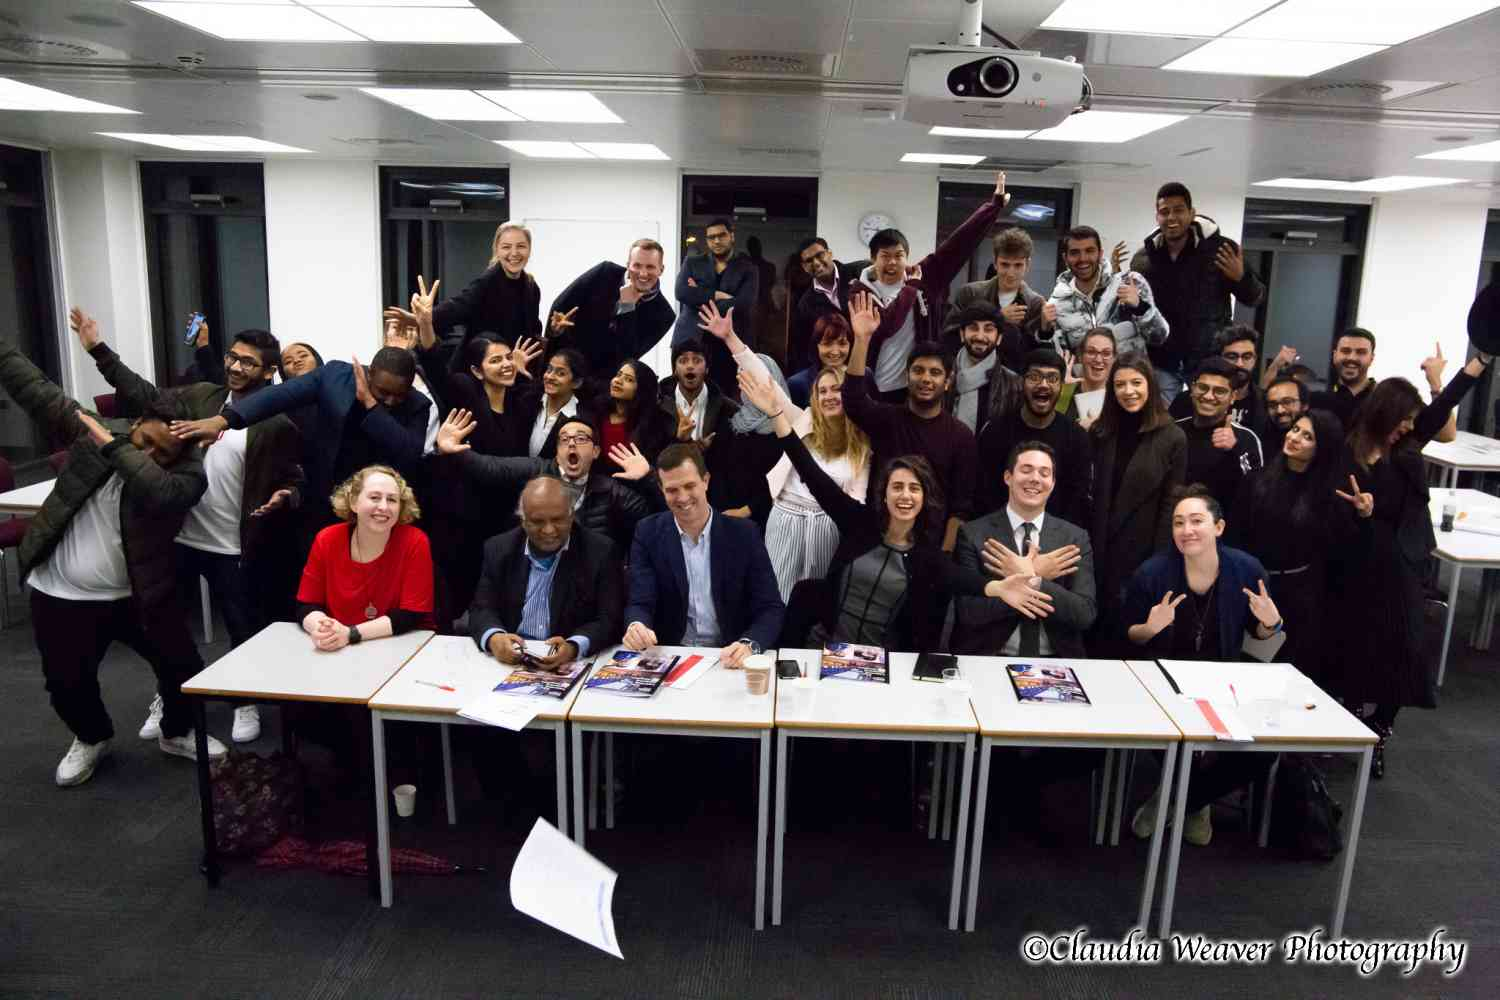 Kingston Business School Dragons' Den December 2018 - Start-up teams and judges at Kingston Business School Dragons' Den December 2018. Photo by Claudia Weaver